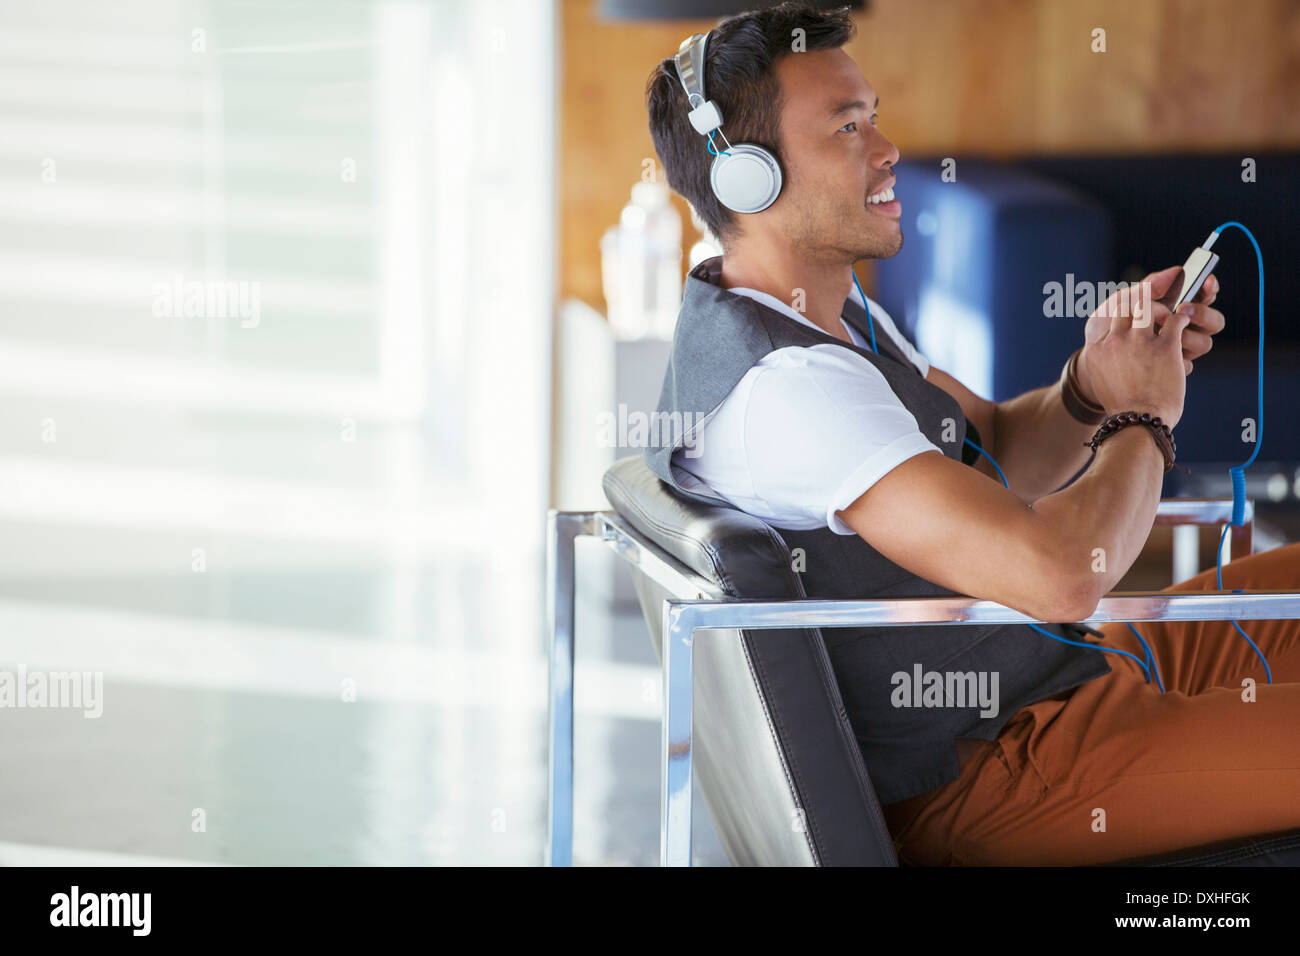 Smiling businessman listening to music on mp3 player with headphones - Stock Image